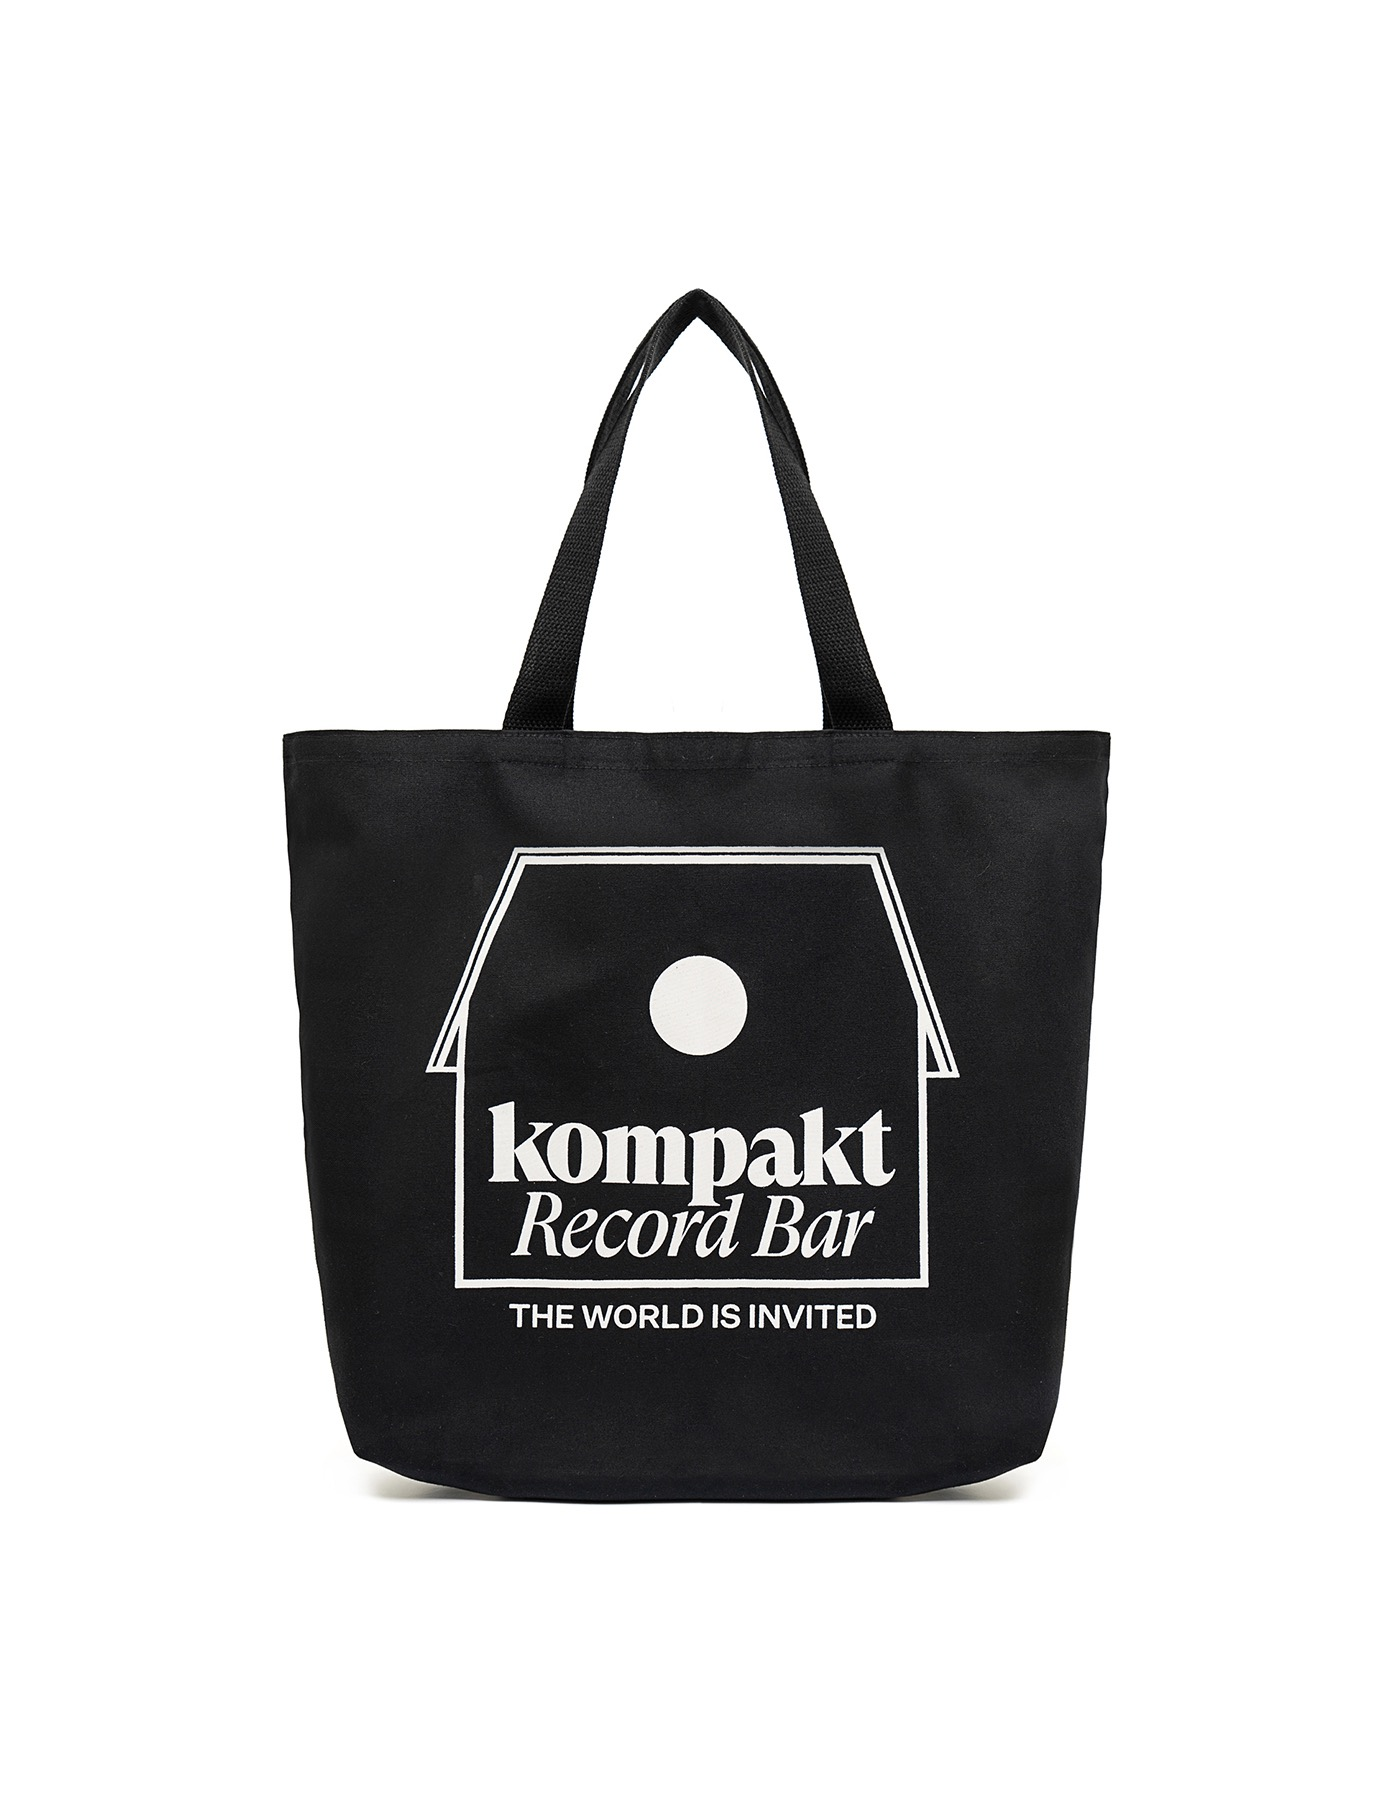 Have you seen our house? Tote Bag - Black